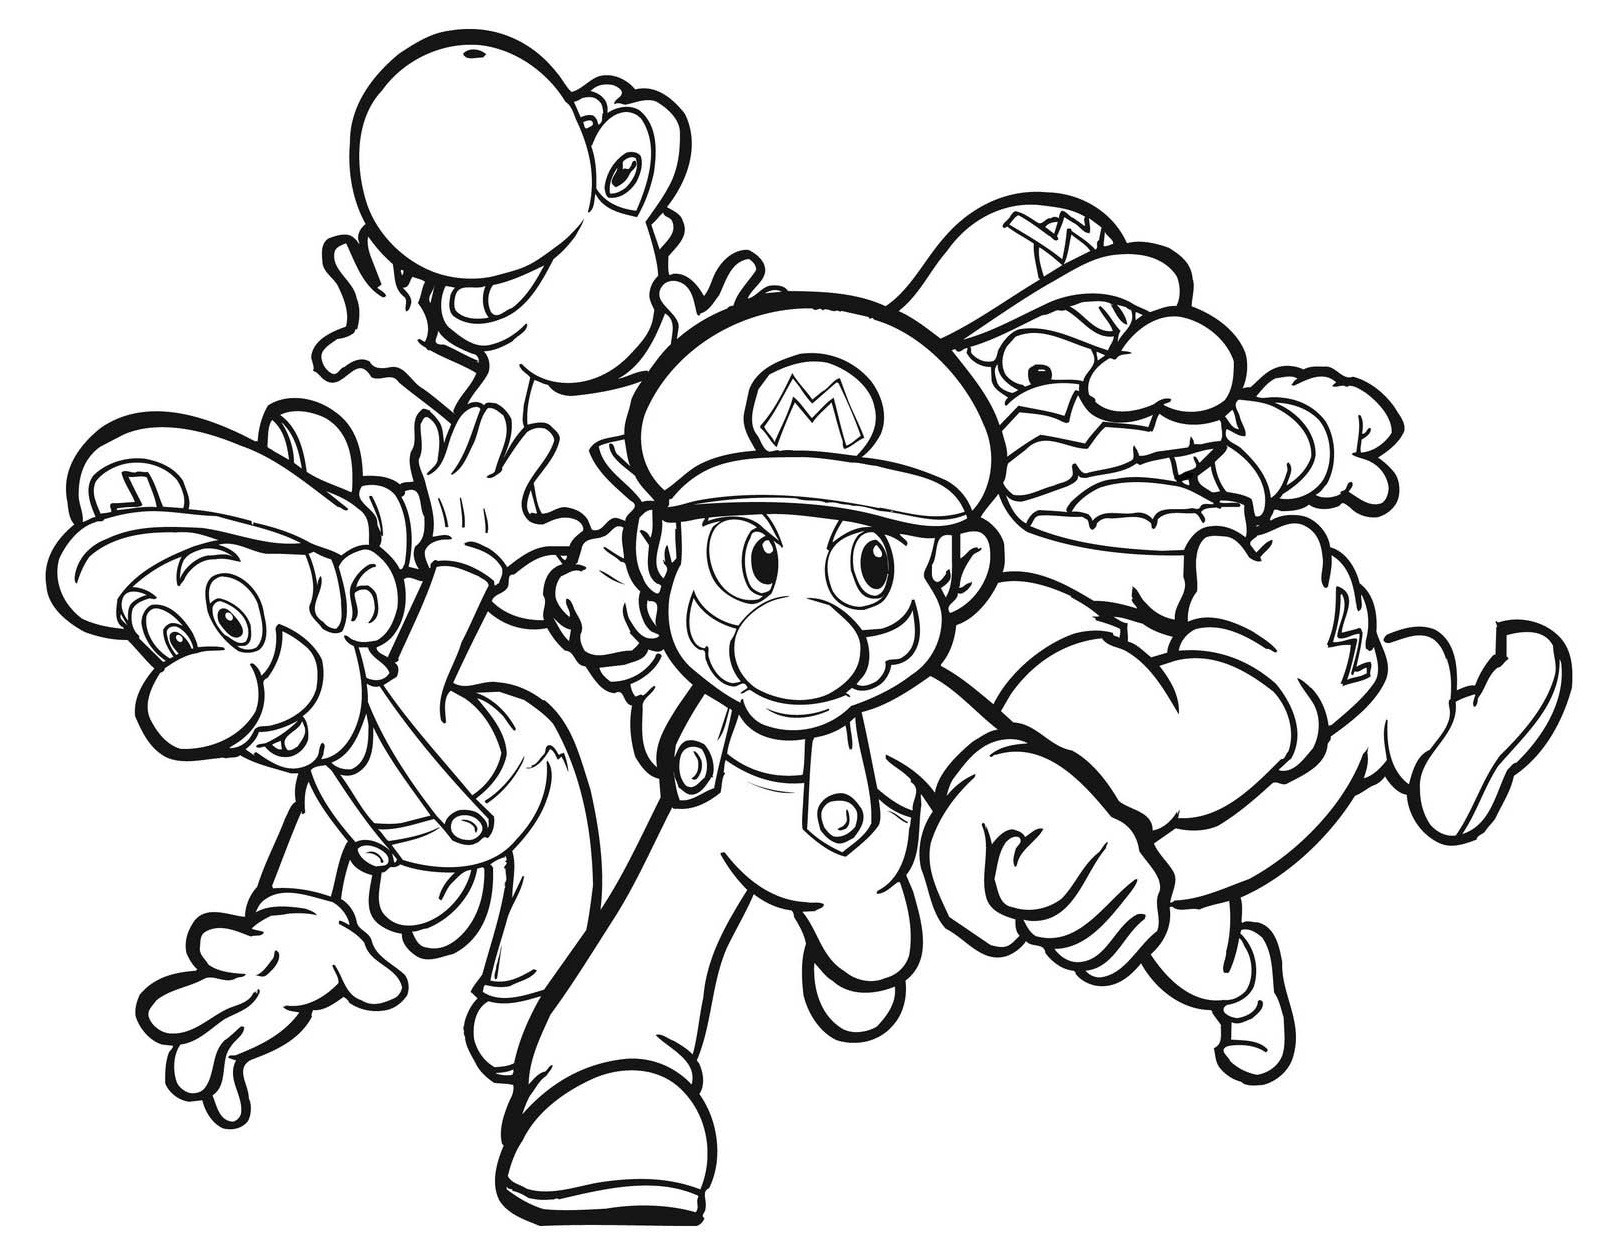 Top 24 Mario Coloring Pages For Kids